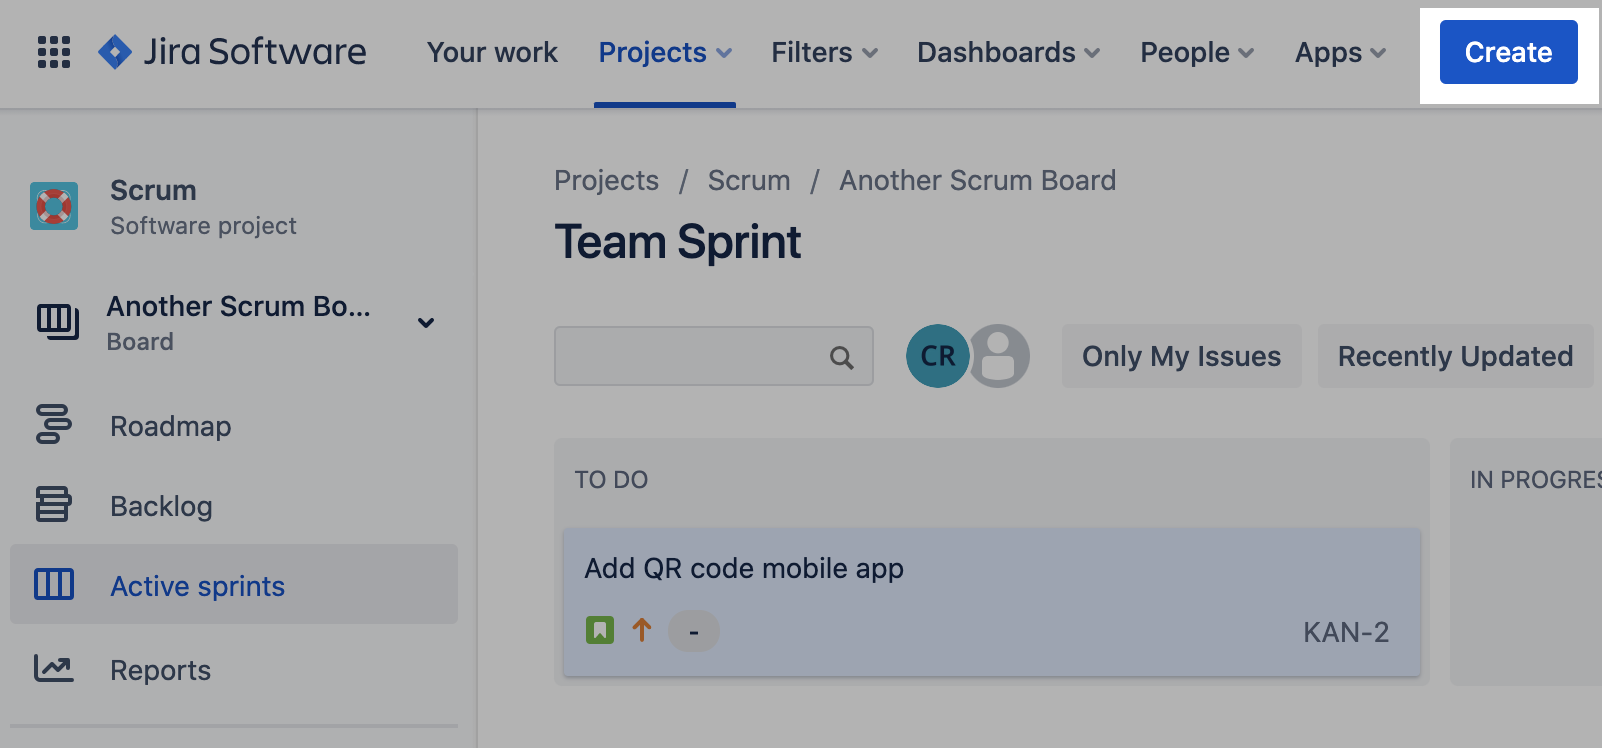 Create an Issue in Jira Software